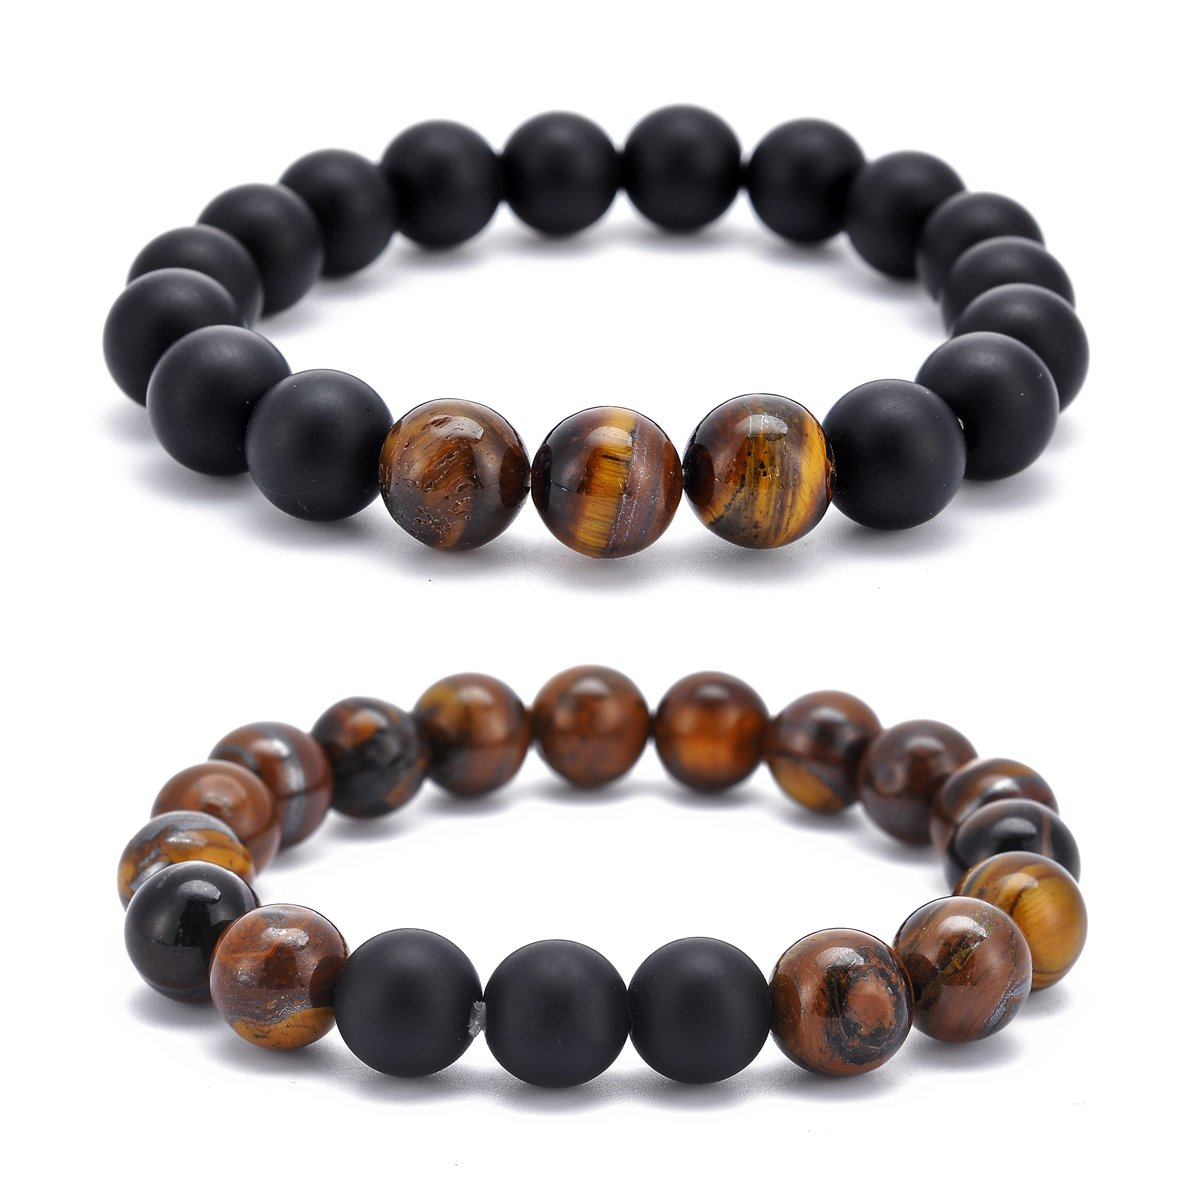 HOUSWEETY Long Distance Relationship Tiger Eye and Onyx Gemstone Matching Set Bracelet 10mm Beads (2pcs) P0X0M0A5O9